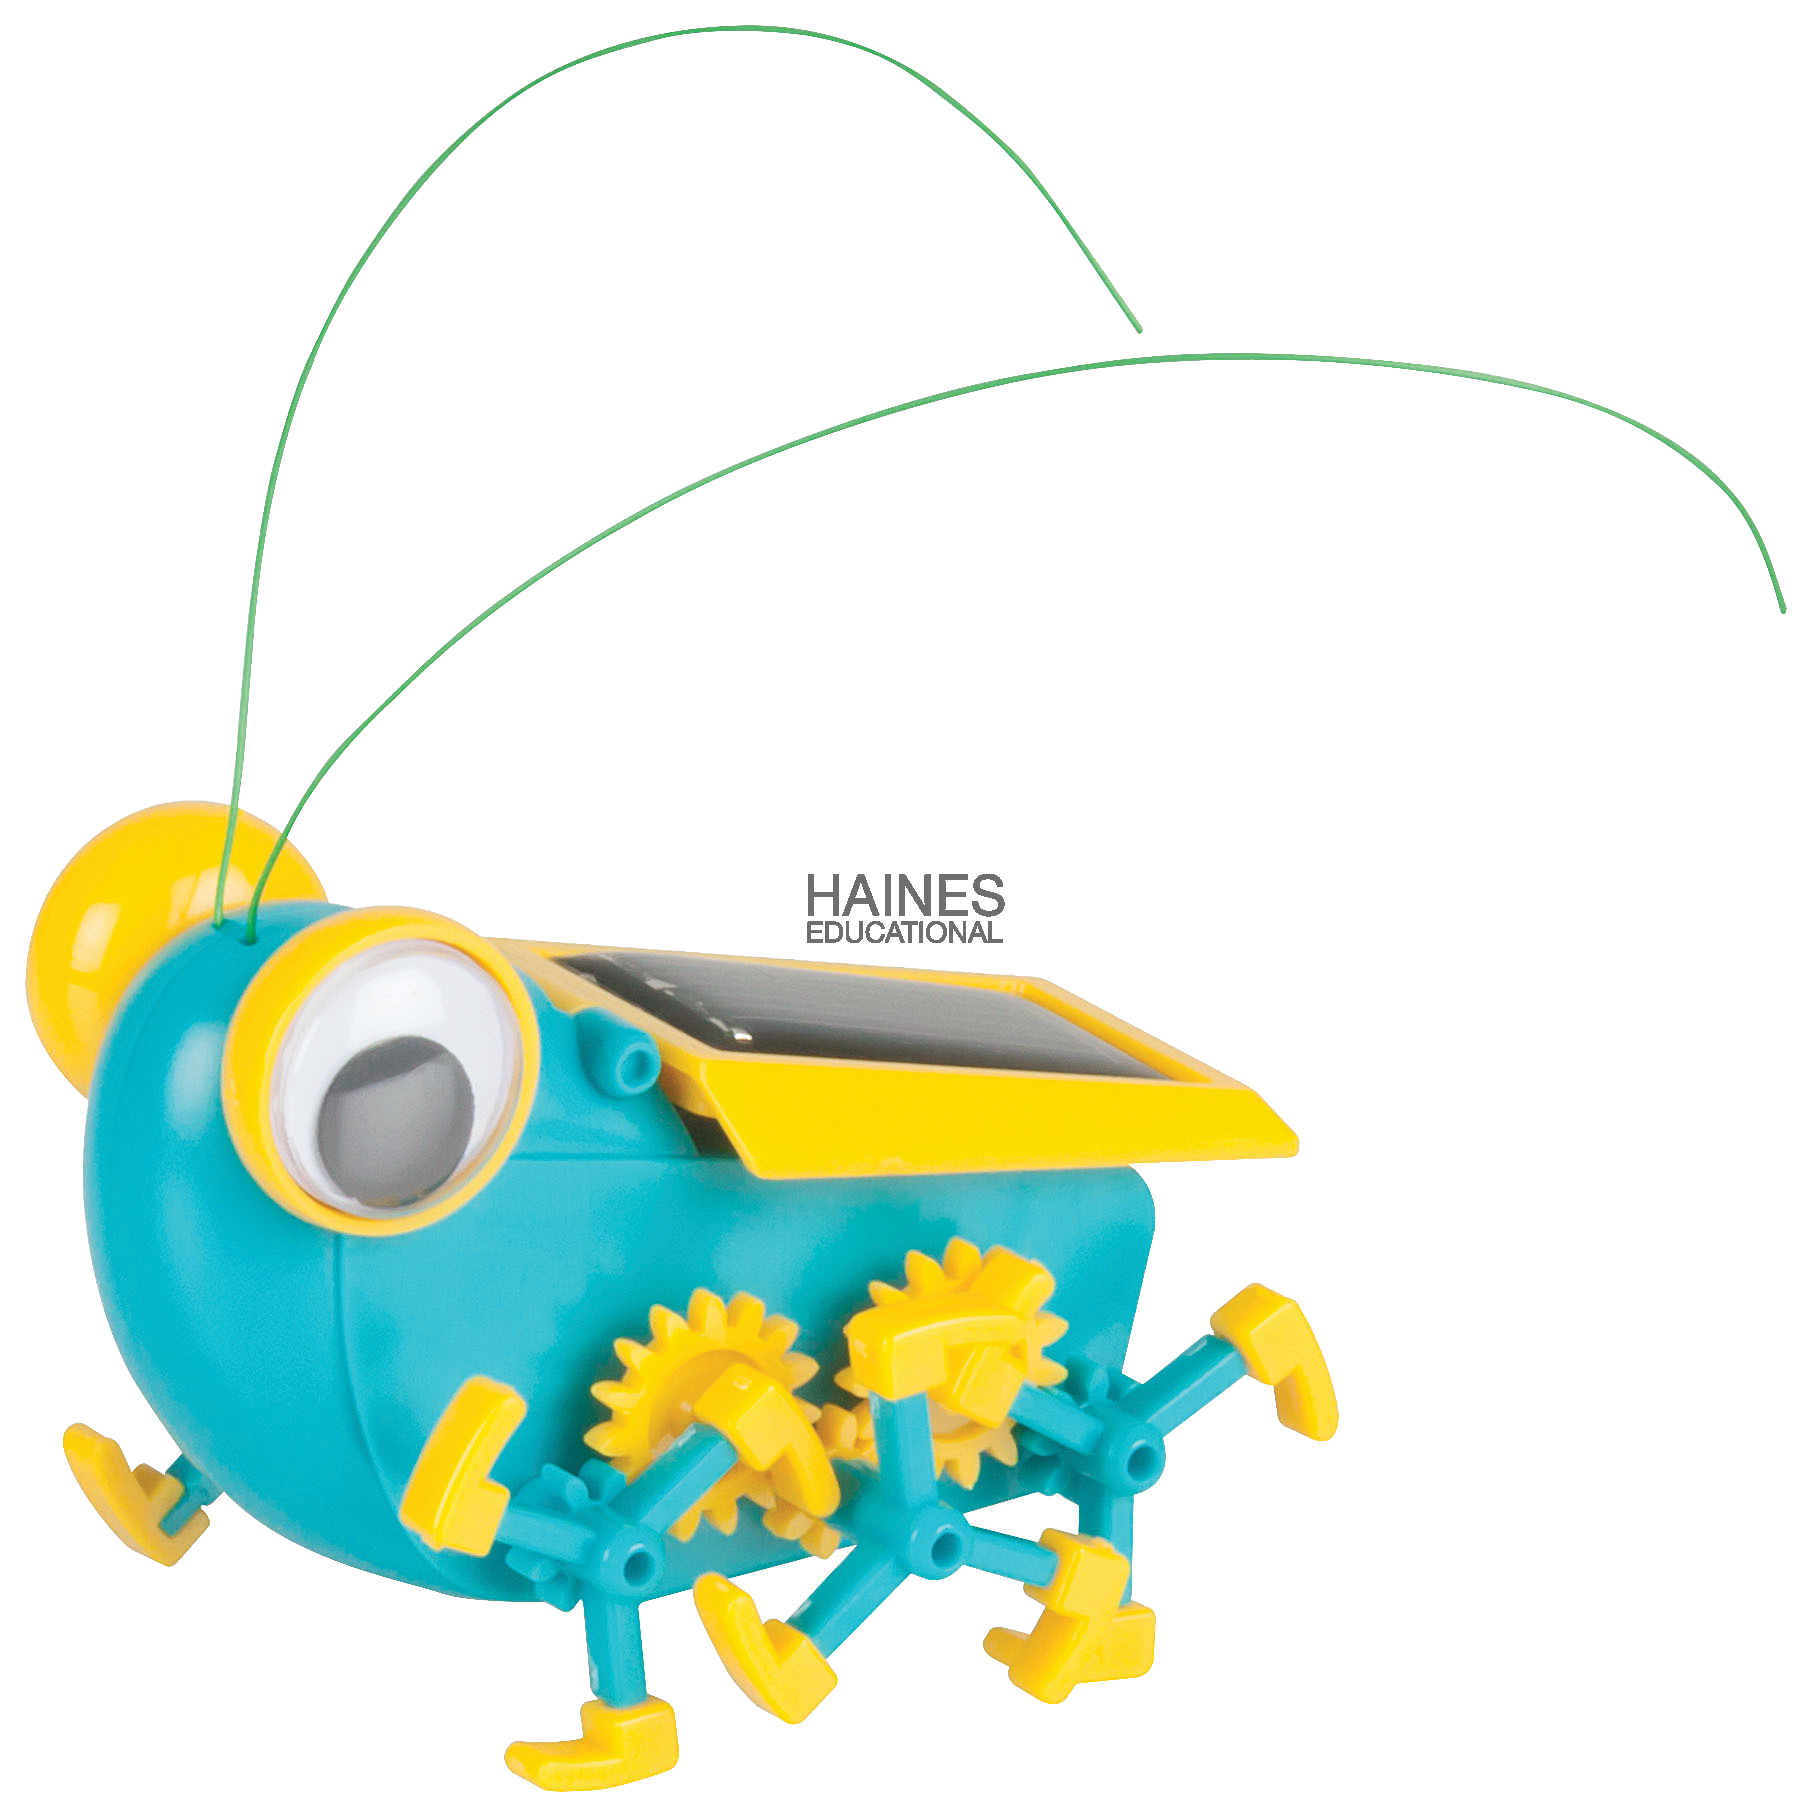 Solar bug. Clipart science general science